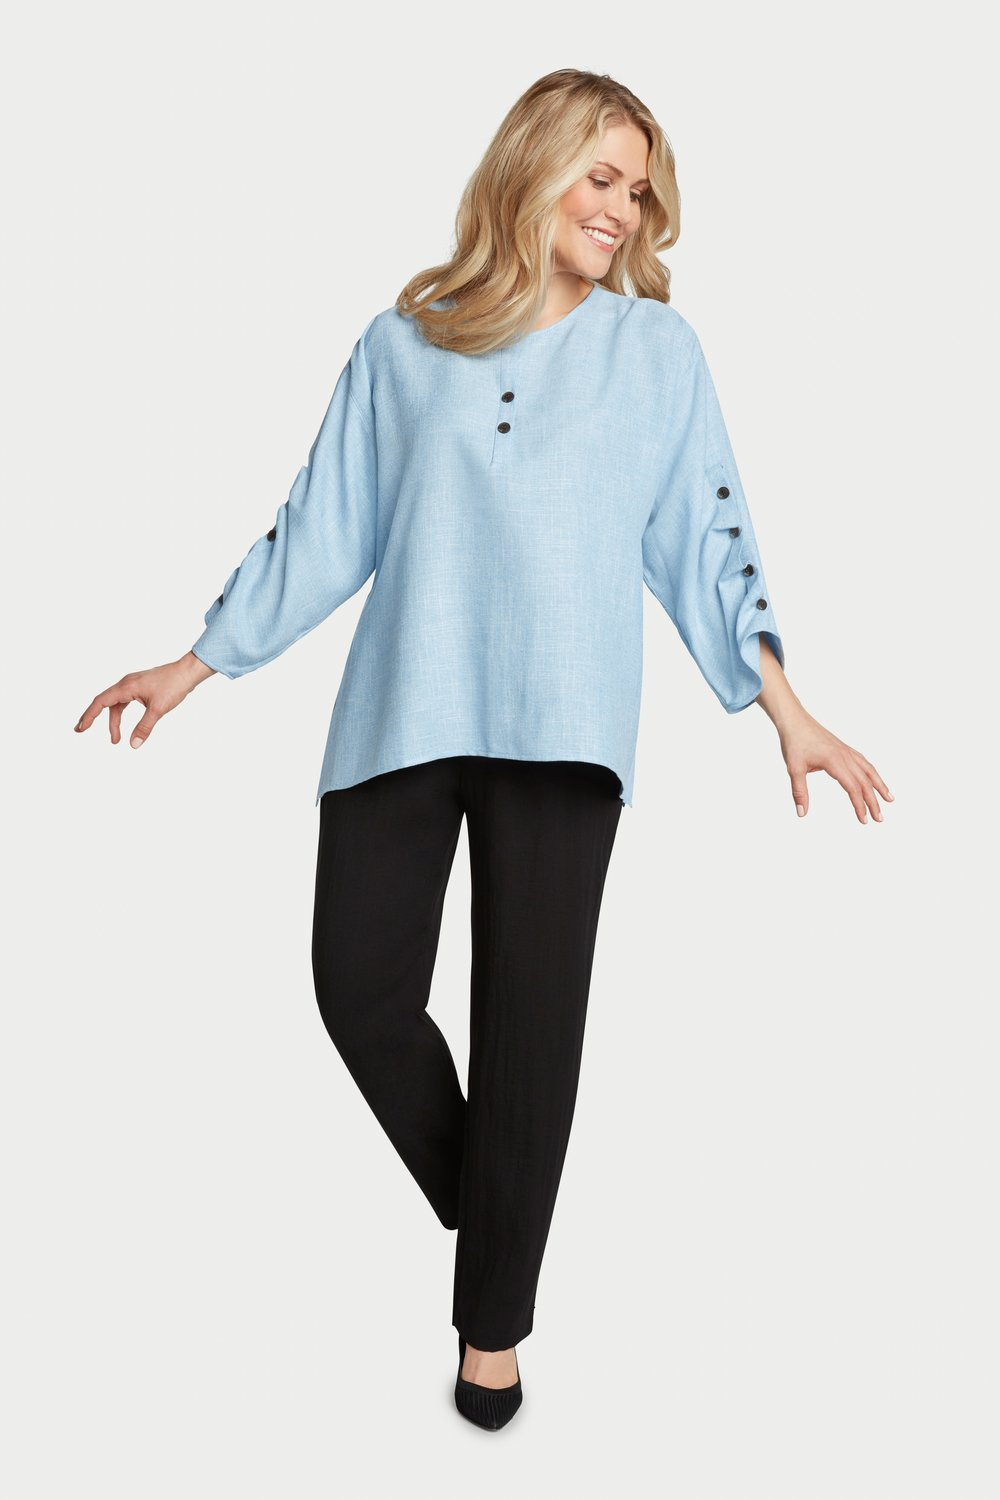 AA7036 - Ripple Tide Henley Pullover    Light Blue/White Heathered - JC06